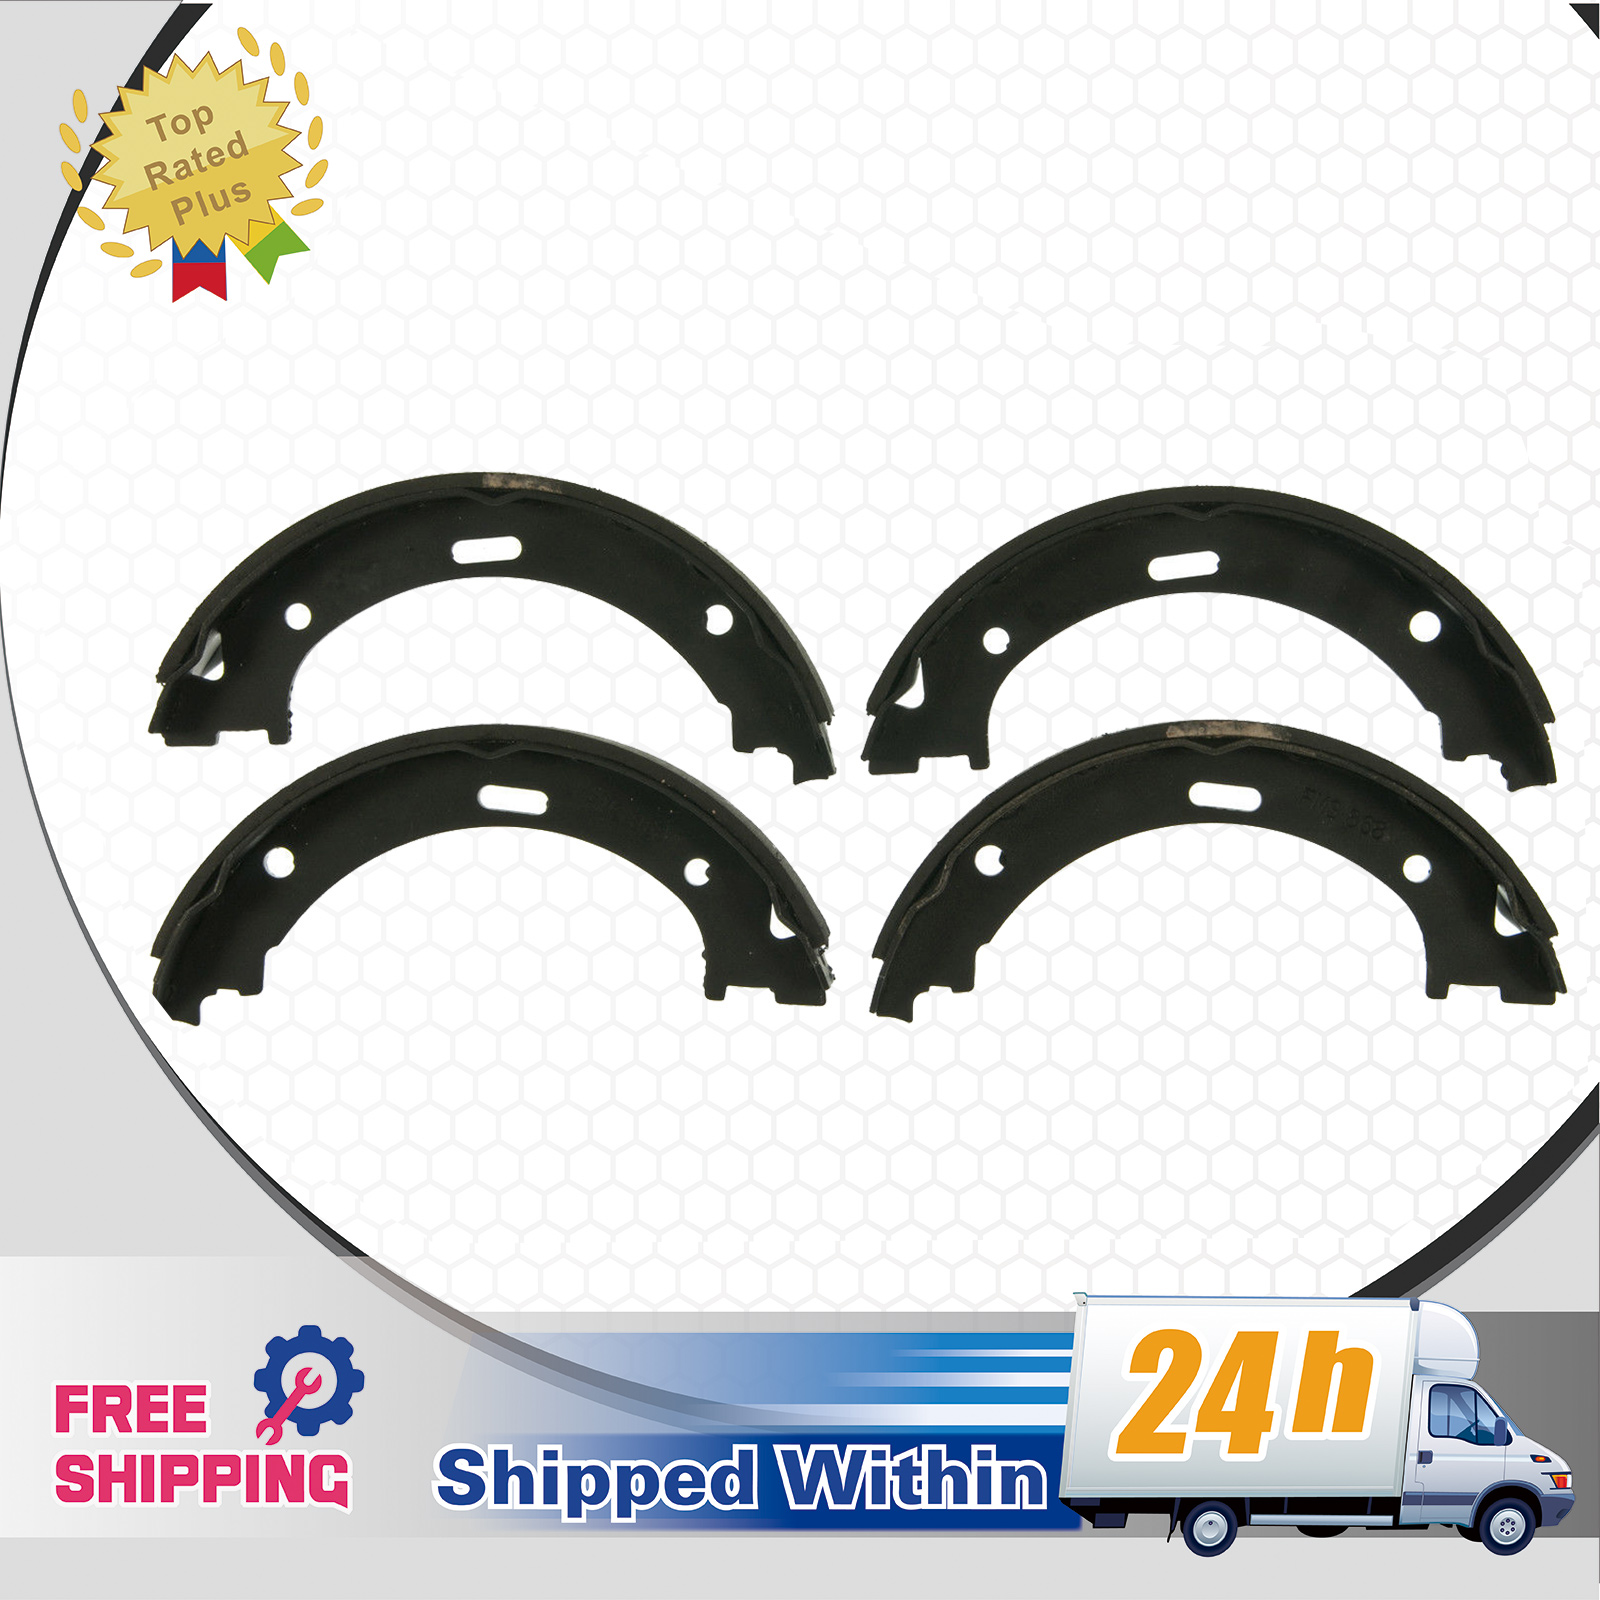 Up 4 rear park brake shoes s868 fit 05 15 nissan armada 2004 image is loading up 4 rear park brake shoes s868 fit vanachro Images